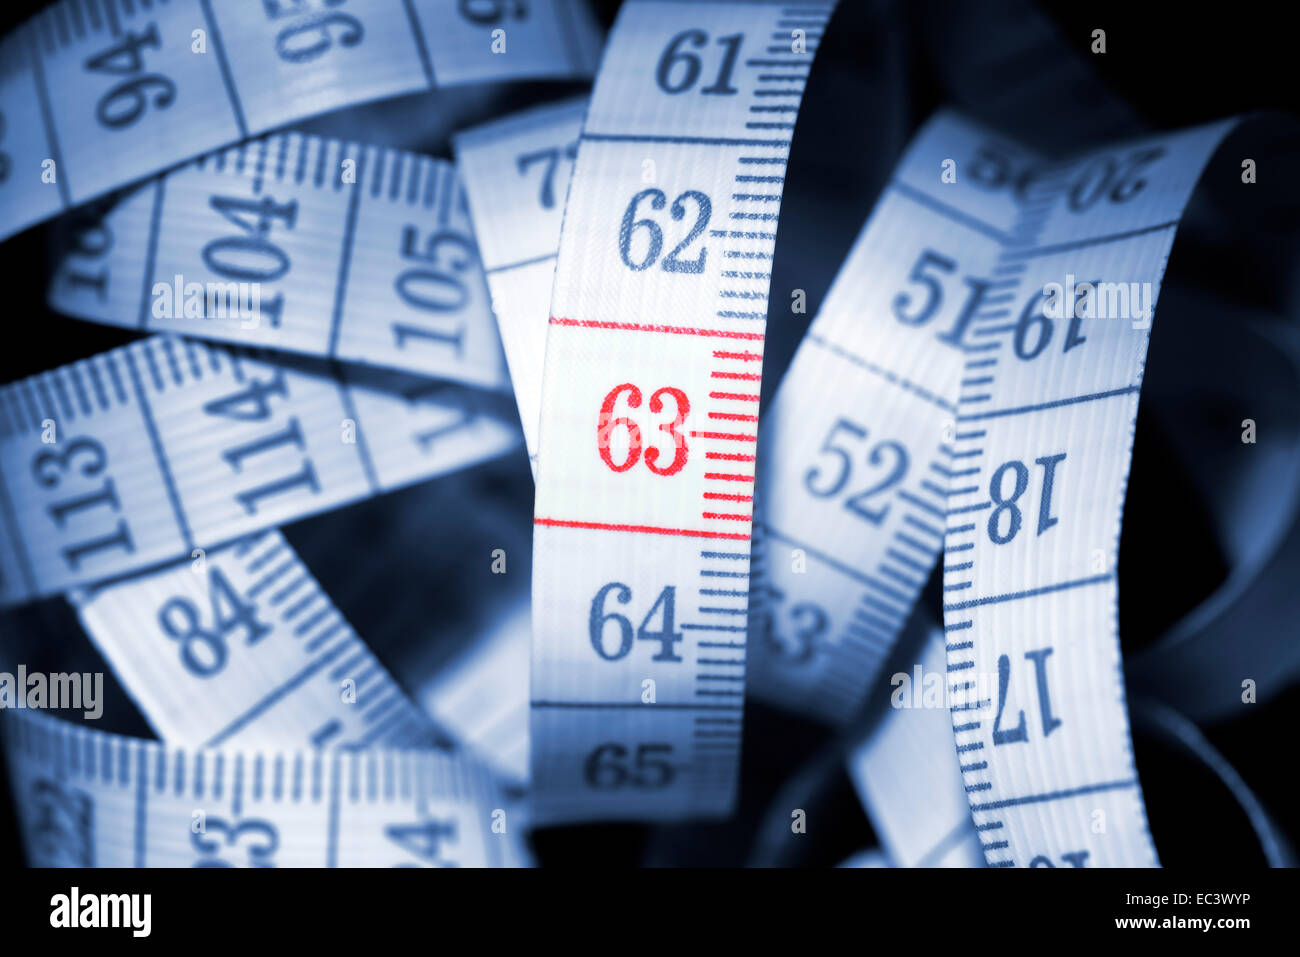 Number 63 on measuring tape, retirement pension at age 63 - Stock Image